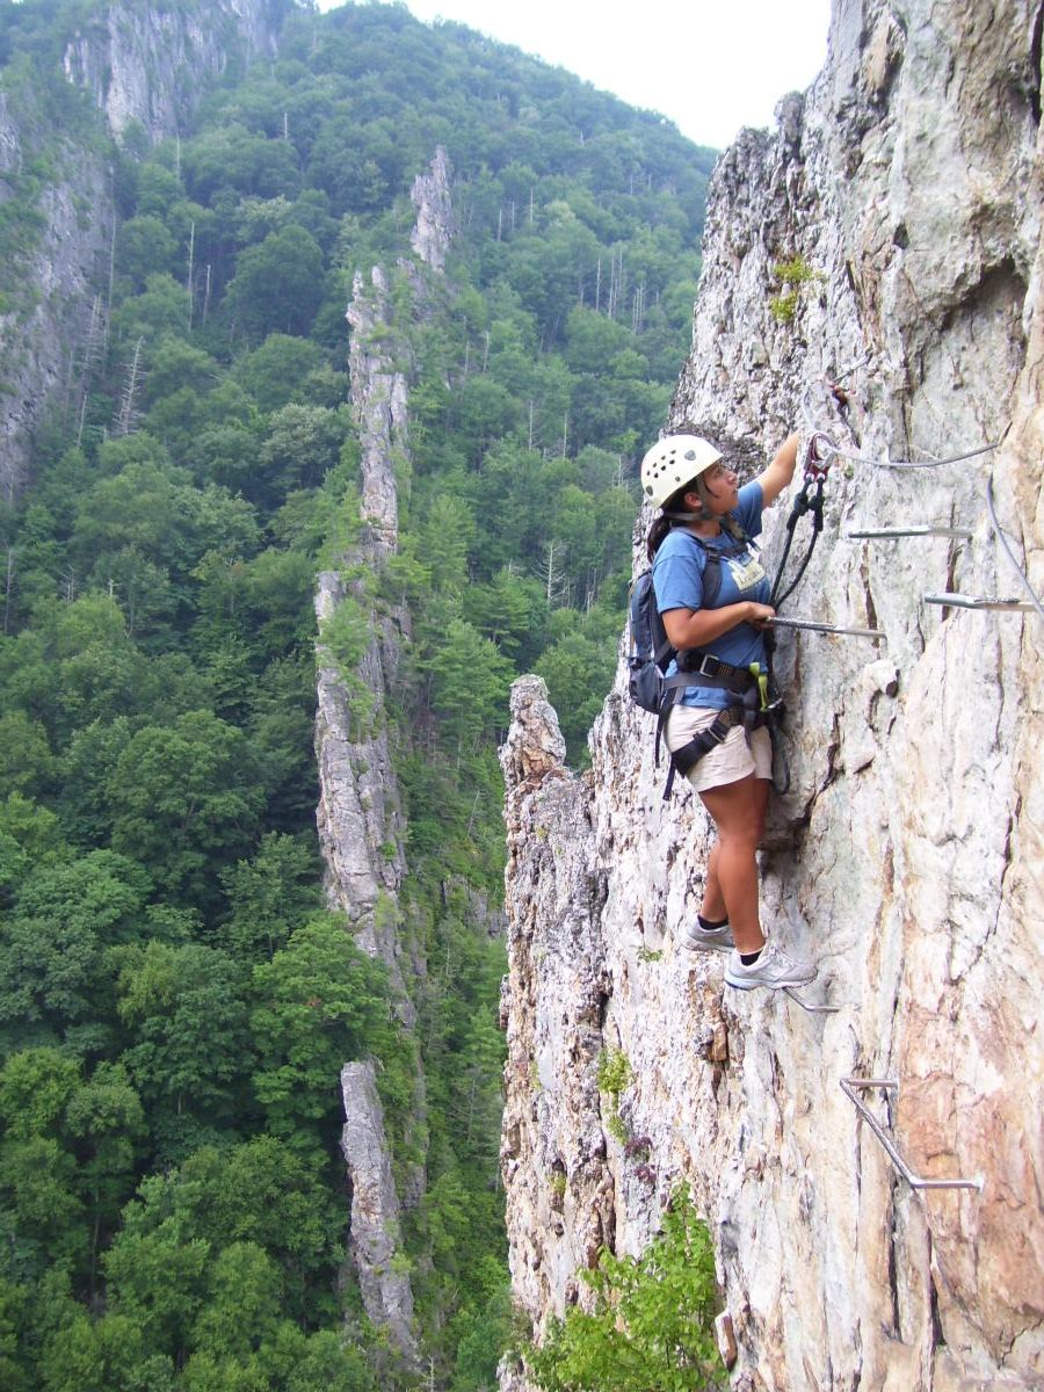 The via ferrata adventure at Nelson Rocks includes a long hike, the actual climb, and crossing a suspension bridge.